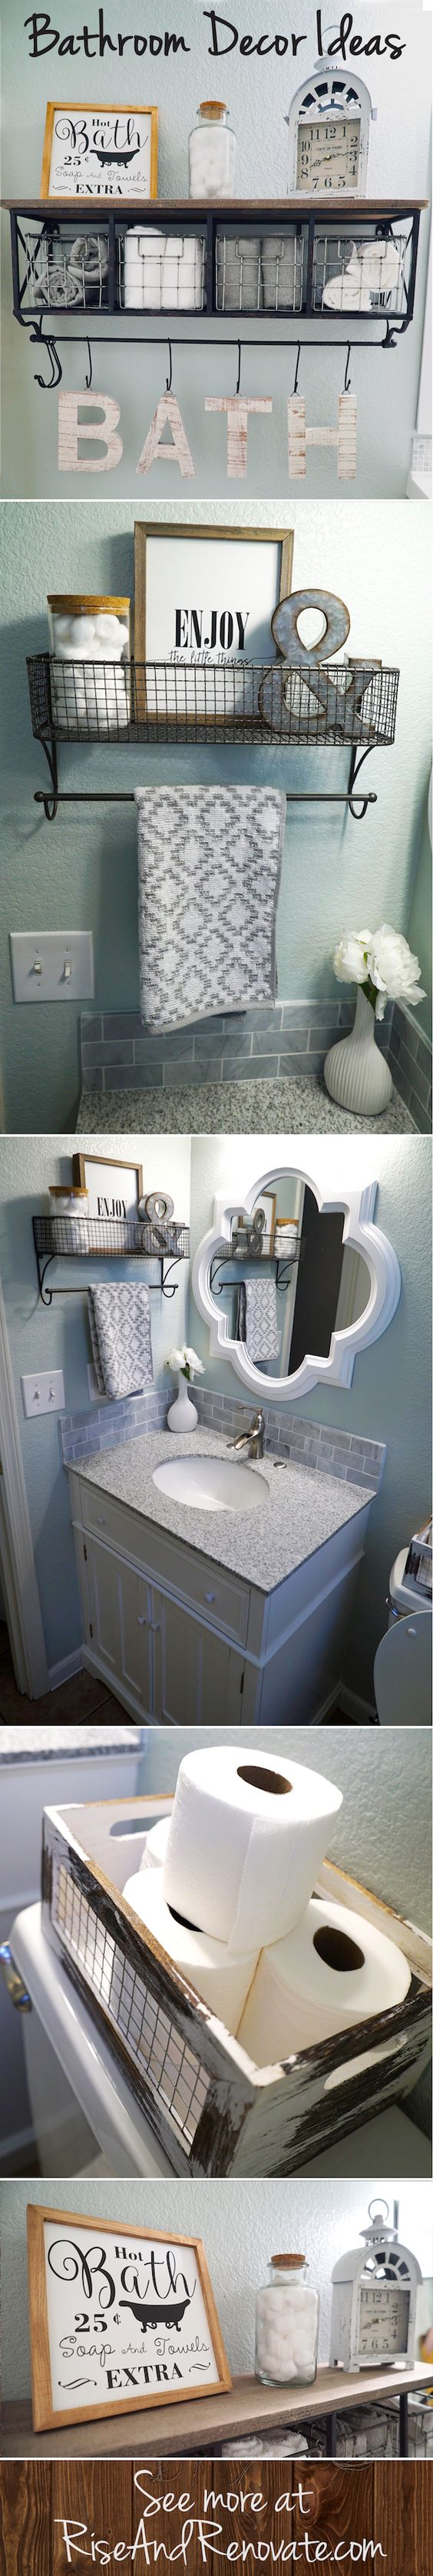 Bathroom Shelf With Wire Basket For Towel Storage.